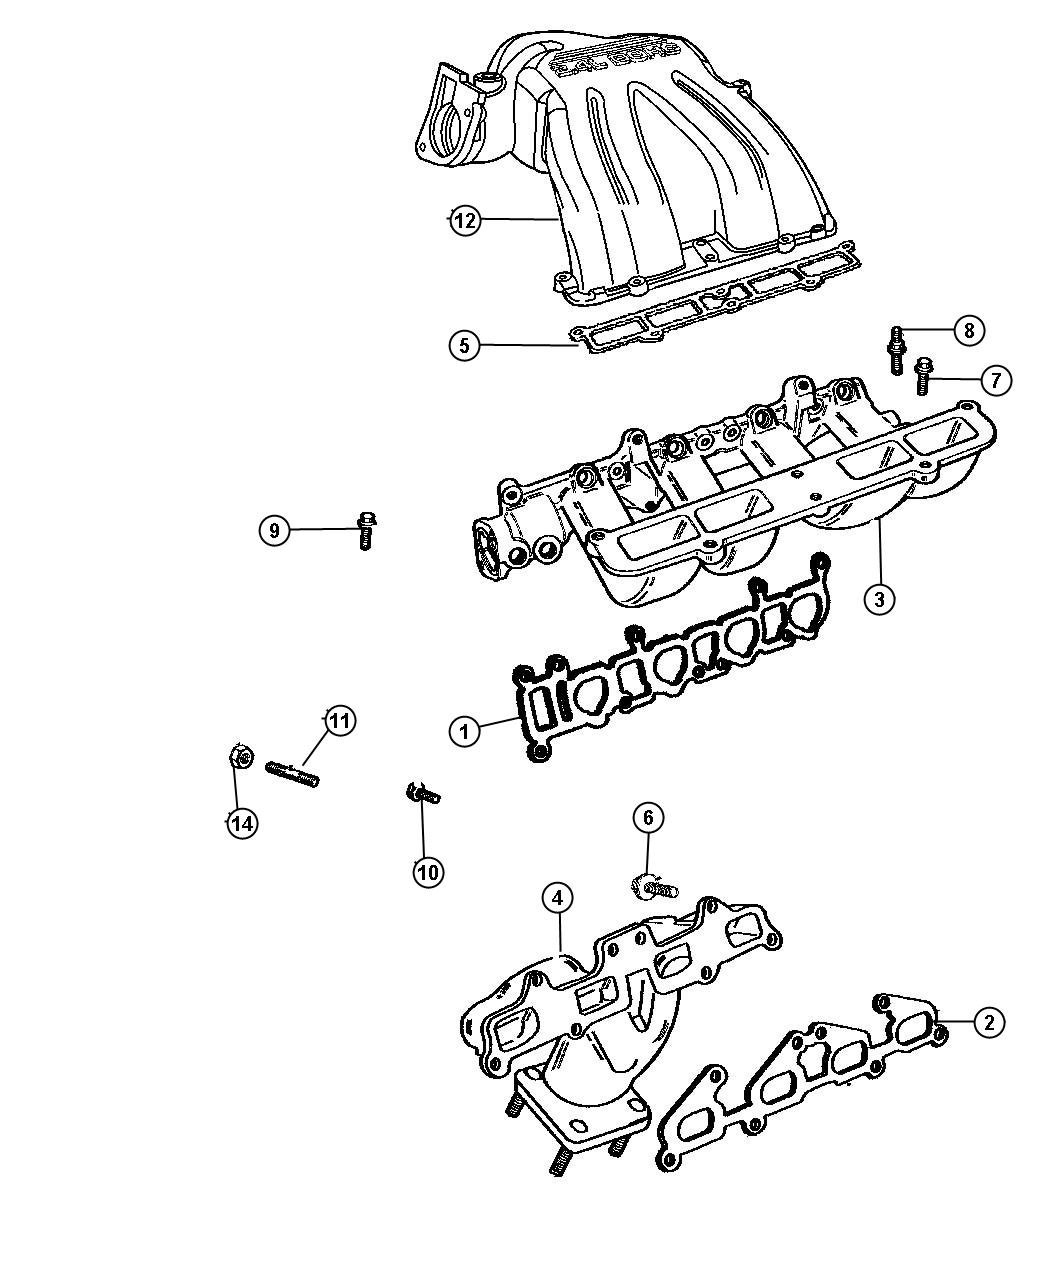 2006 Dodge Caravan Manifolds, Intake And Exhaust 2.4L [2